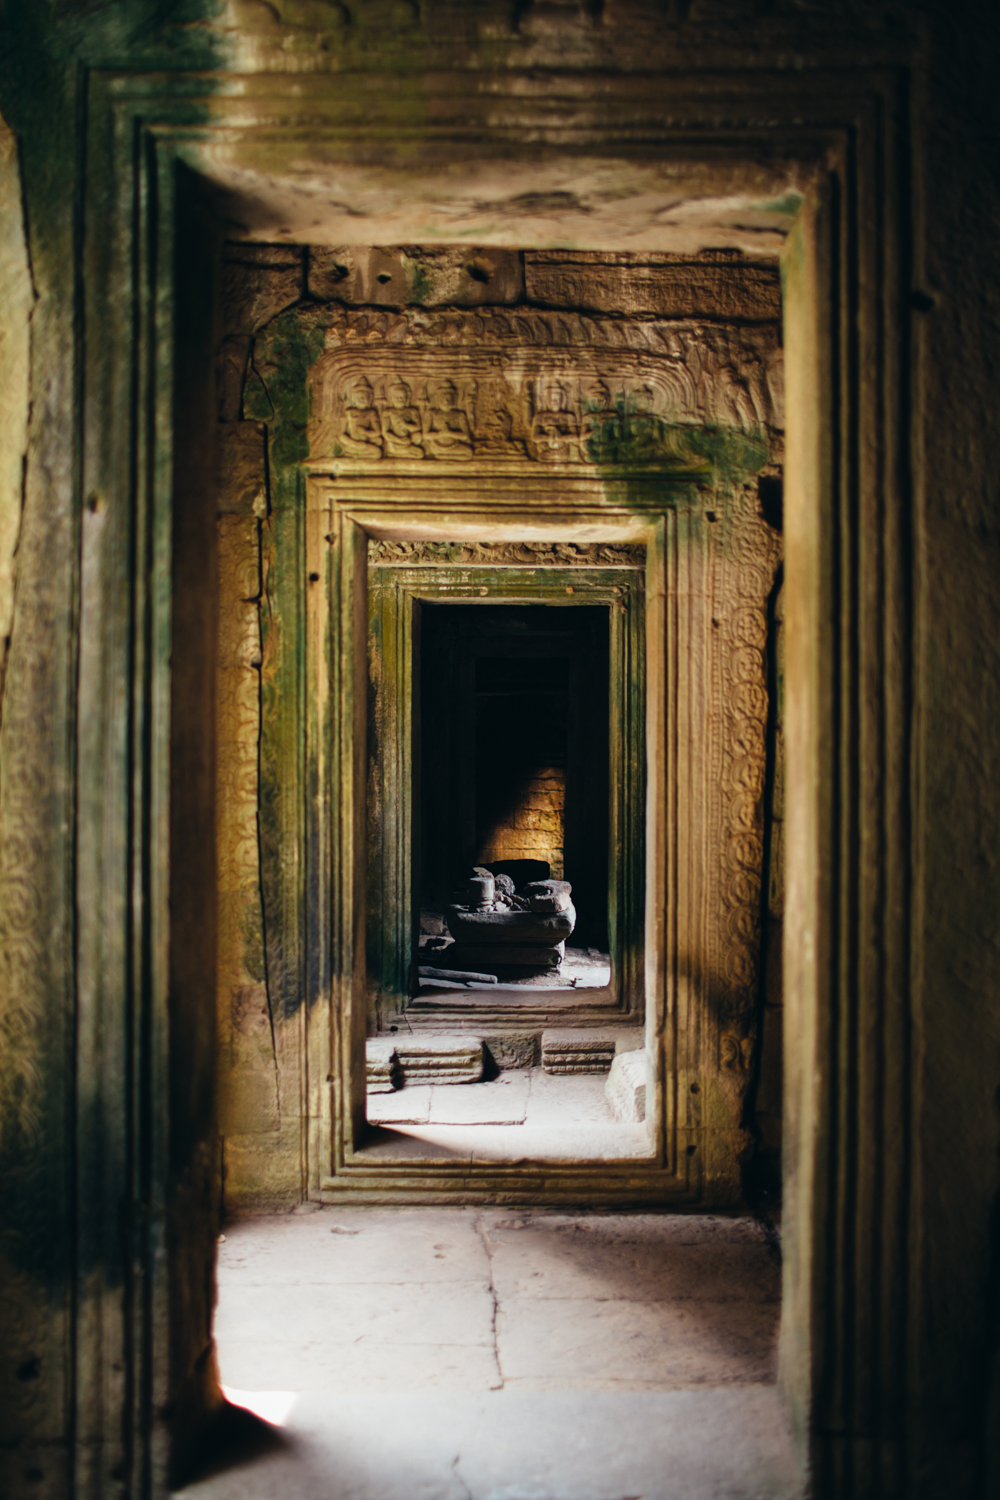 Inside the Bayon temple